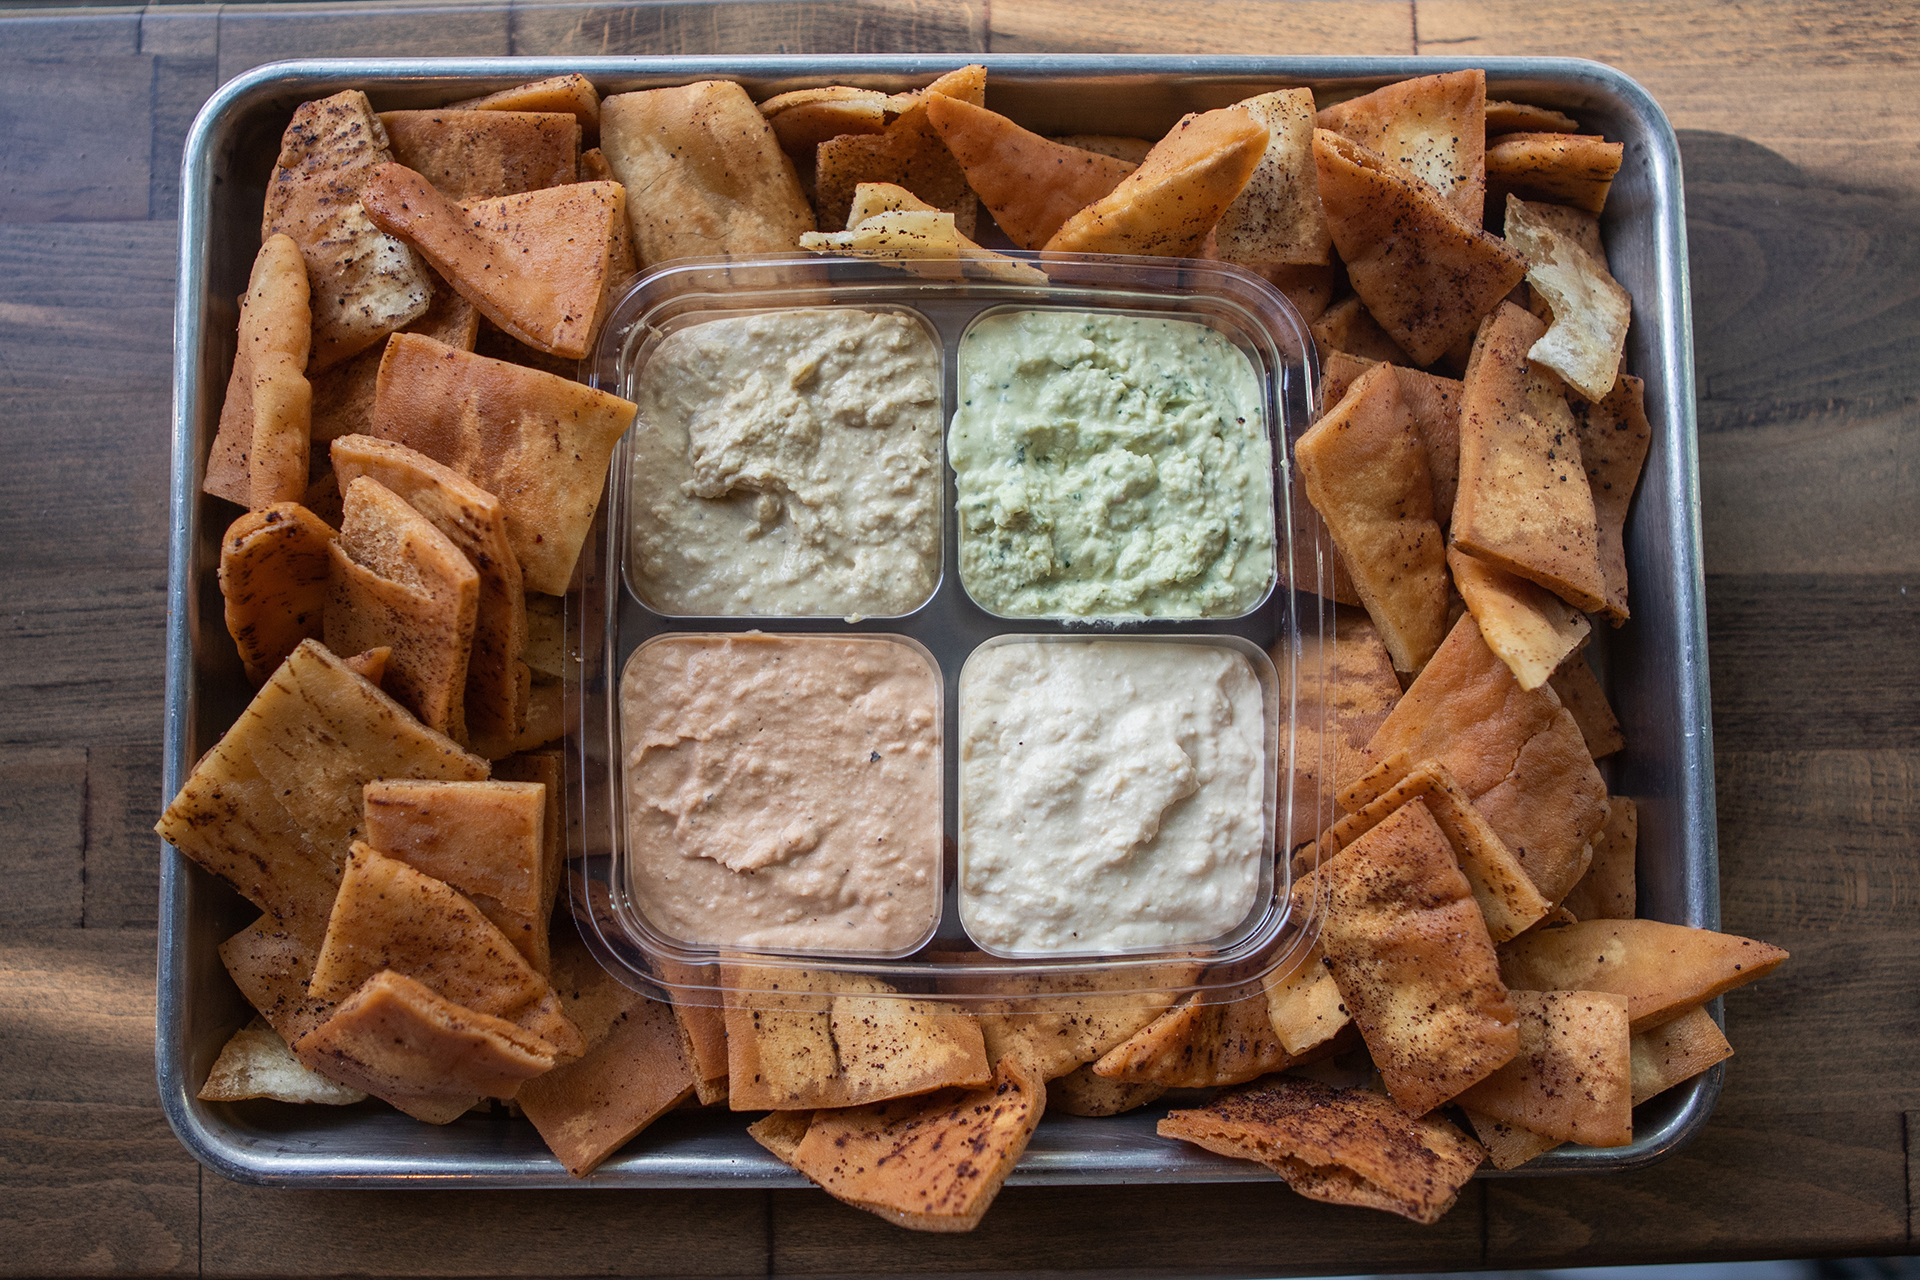 The Party Pack is pictured in a square container with four side orders of our signature Hummus flavors, Classic Hummus, Cilantro Jalapeño Hummus, Roasted Tomato Habanero Hummus, and Cumin Lime Hummus. The Party Pack container is centered on a large rectangular metallic tray and is surrounded by fresh pita chips. The tray is on a wood table background.